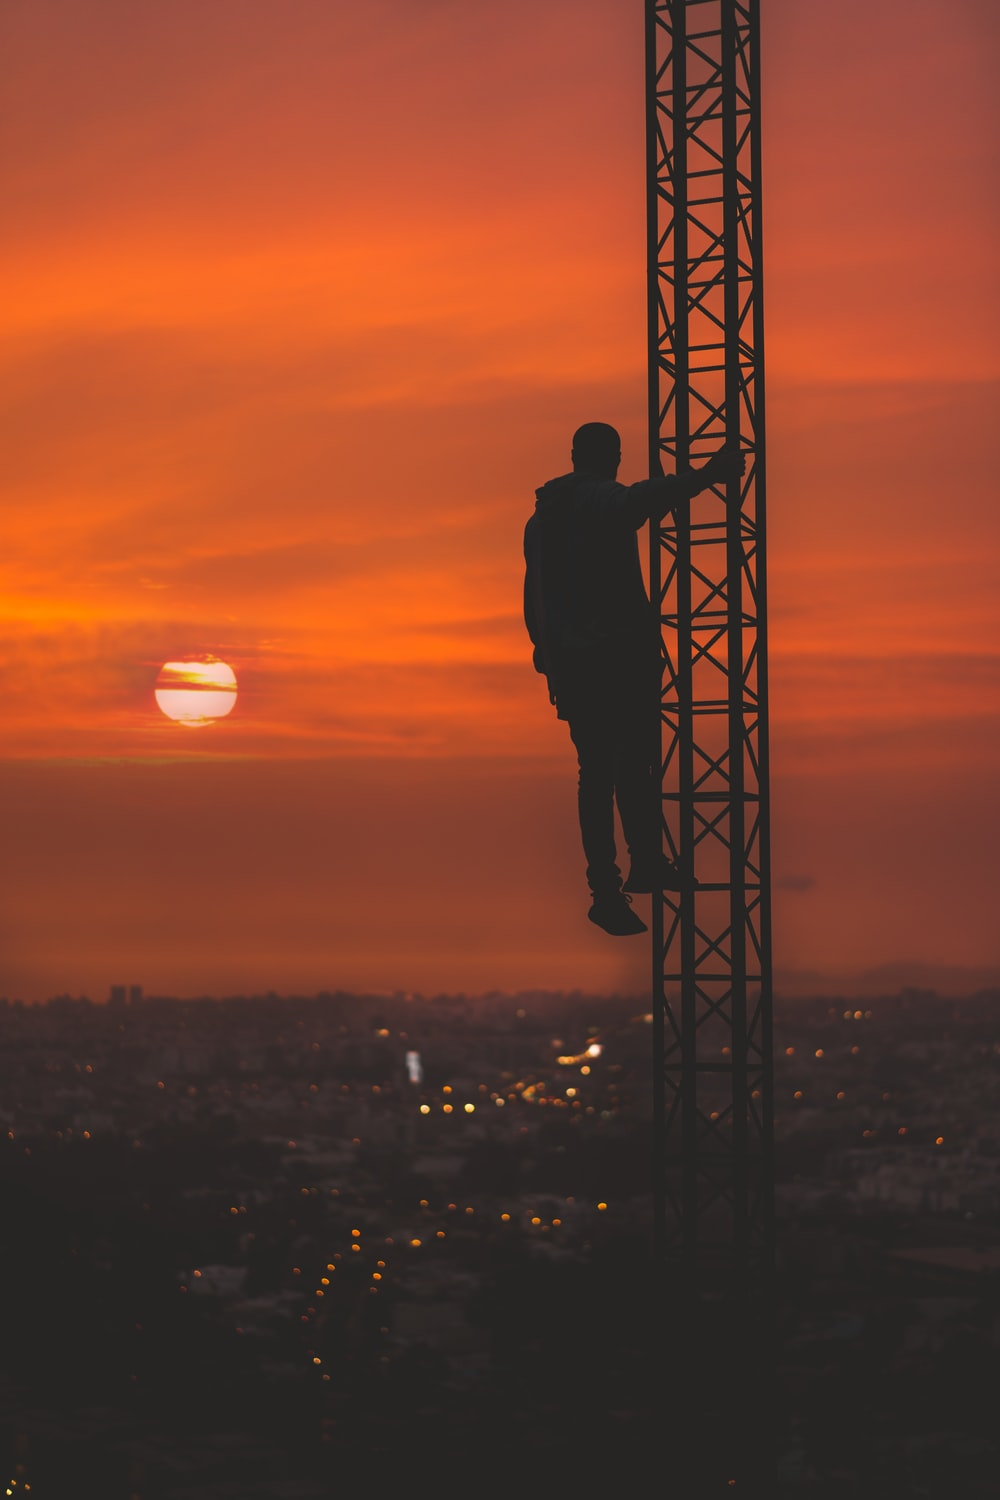 silhouette of man climbing tower during sunset